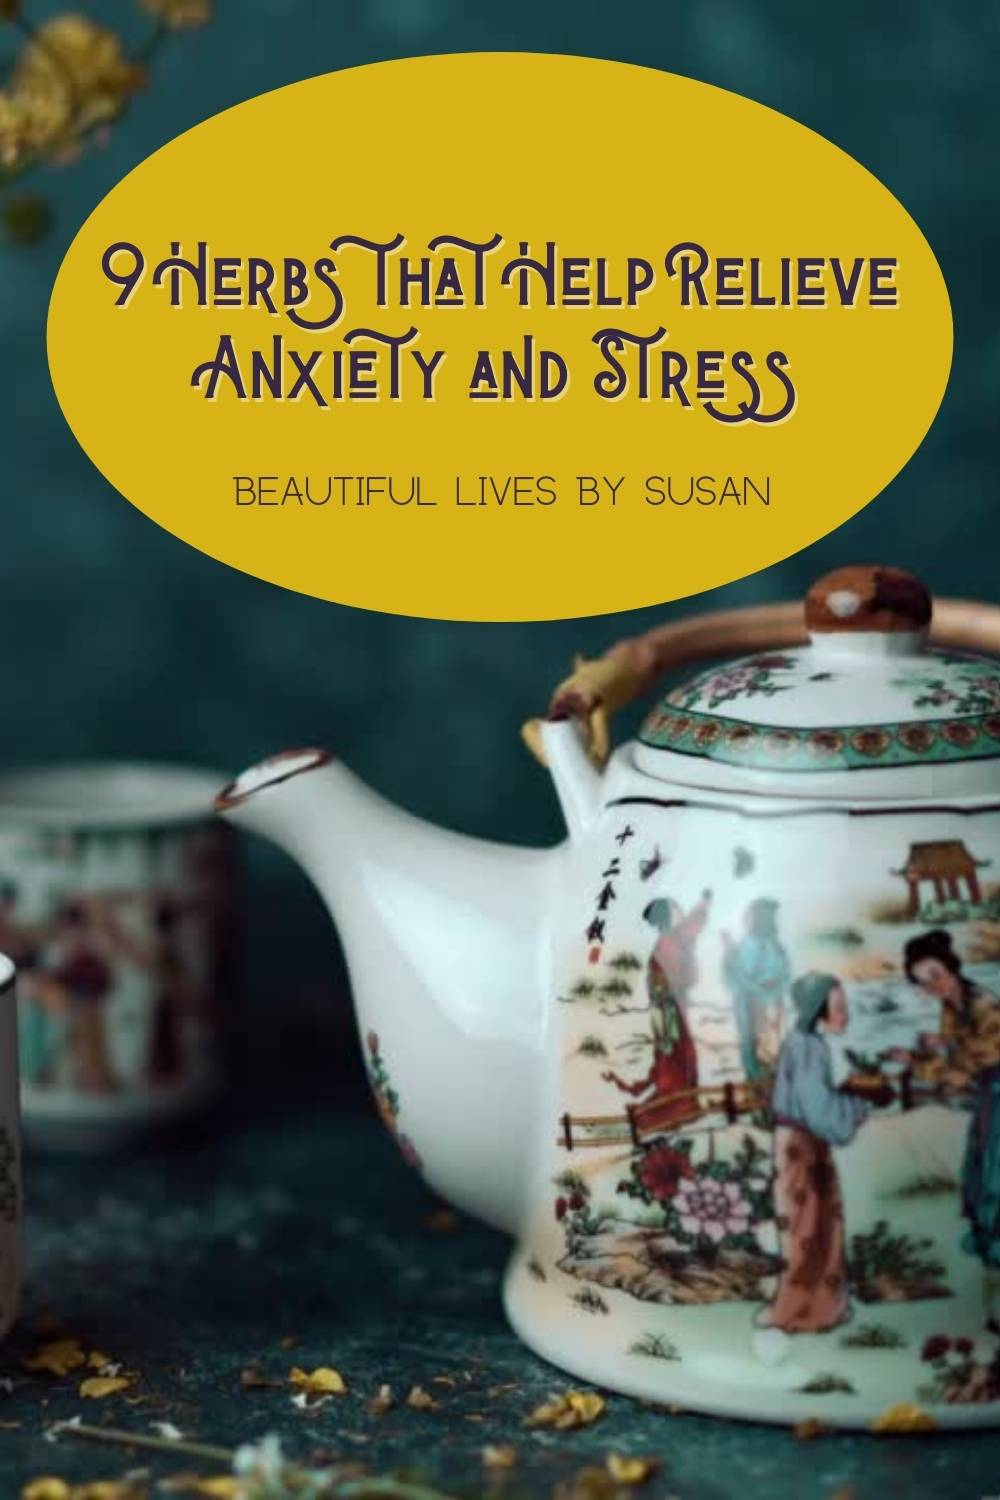 9 Herbs that Help Relieve Anxiety and Stress Asian china teapot and cups with chamomile flowers being added to the pot.